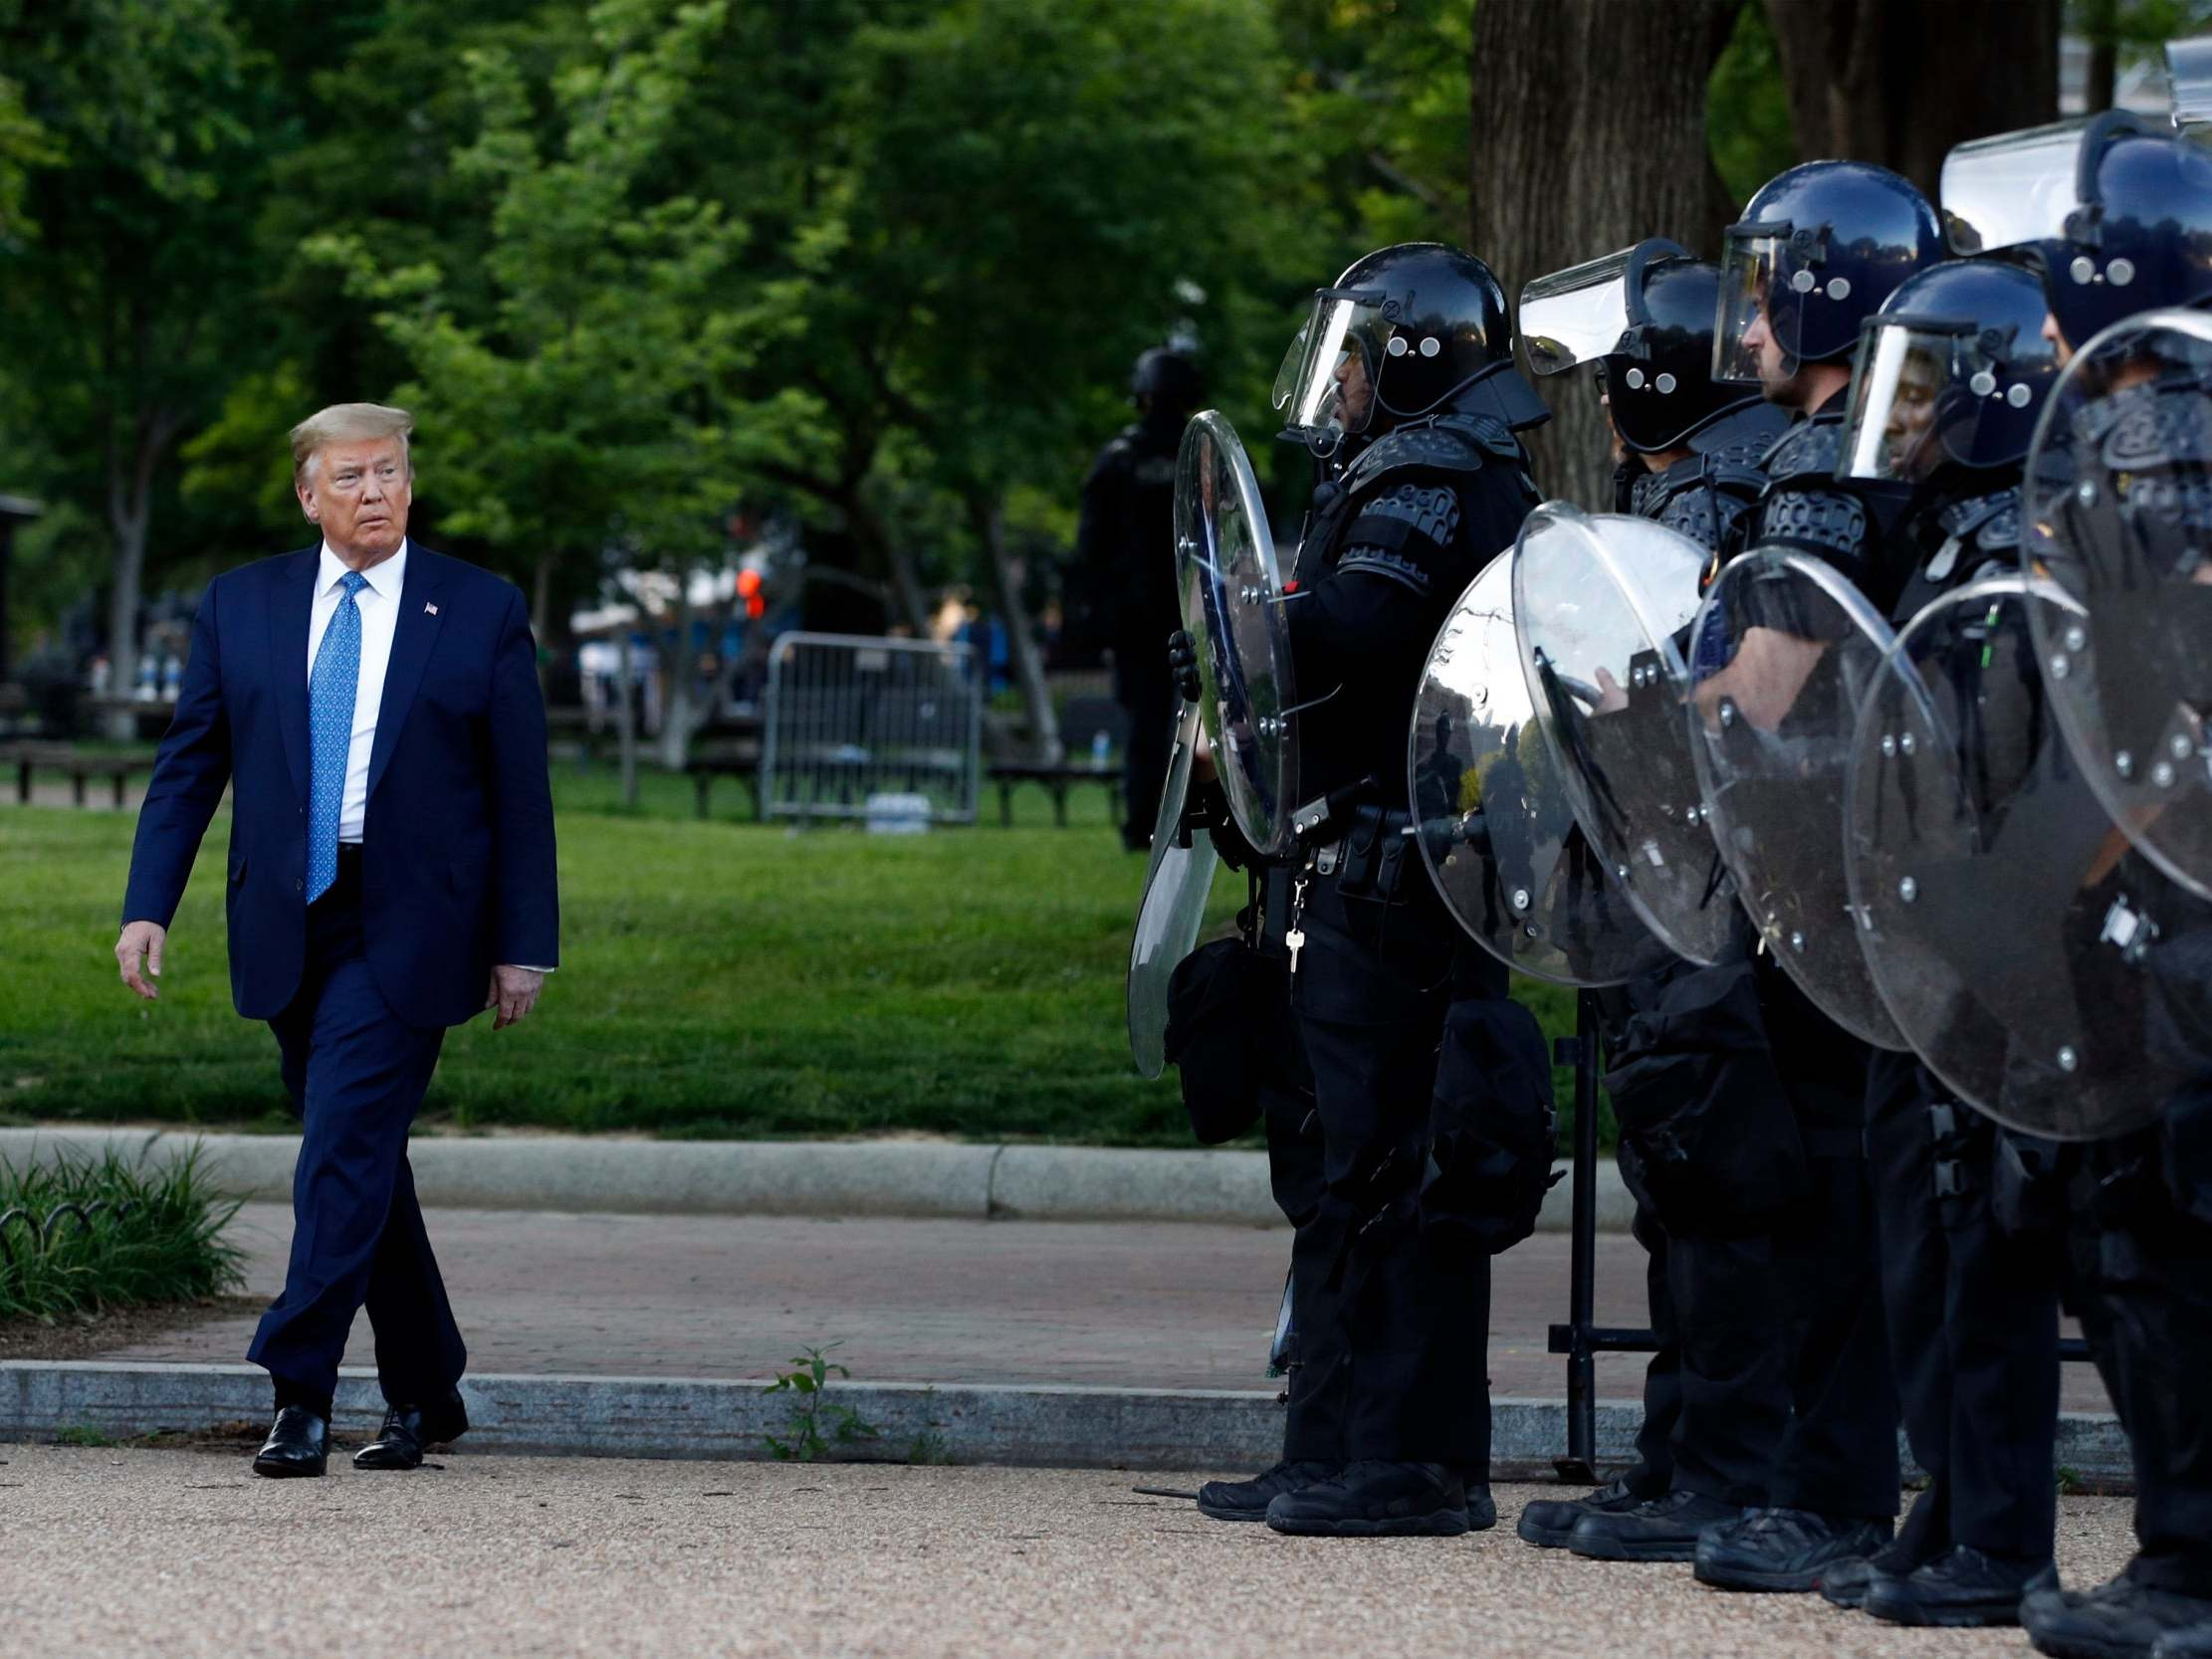 Bishops 'outraged' as priests forced from church by armed police before Trump Bible photo